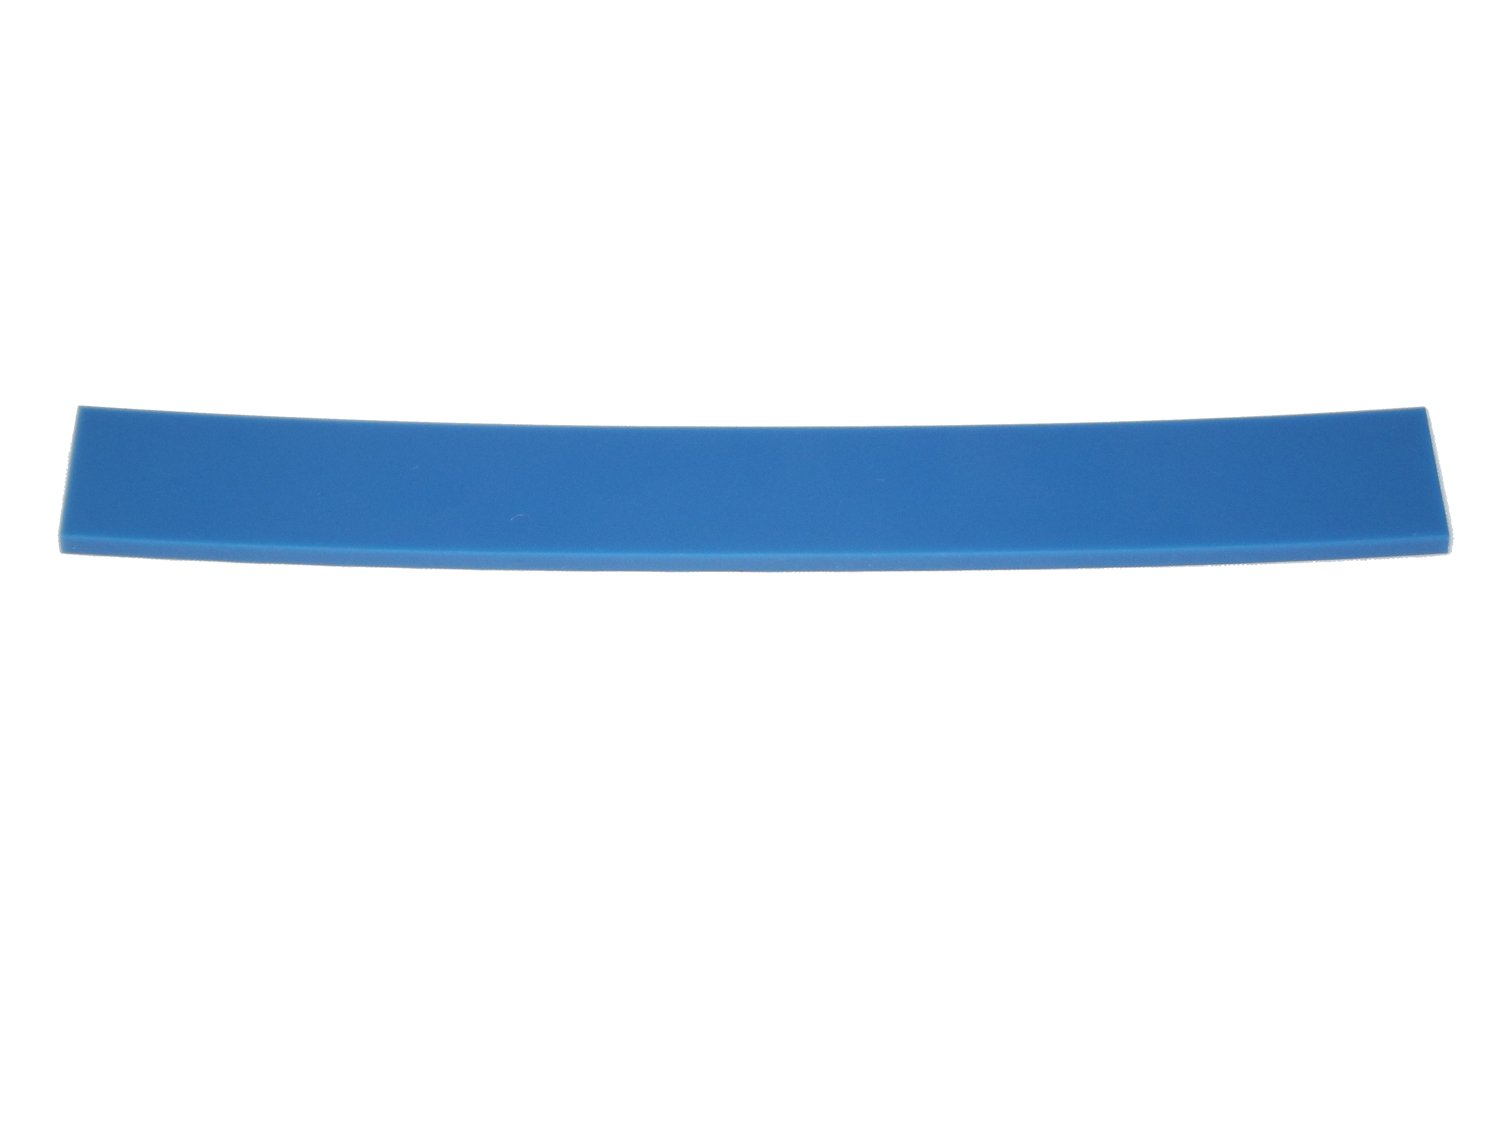 GT118-6 6 BLUE SQUEEGEE REFILL WINDOW TINTING TINT FITTING TOOL 10-Pack